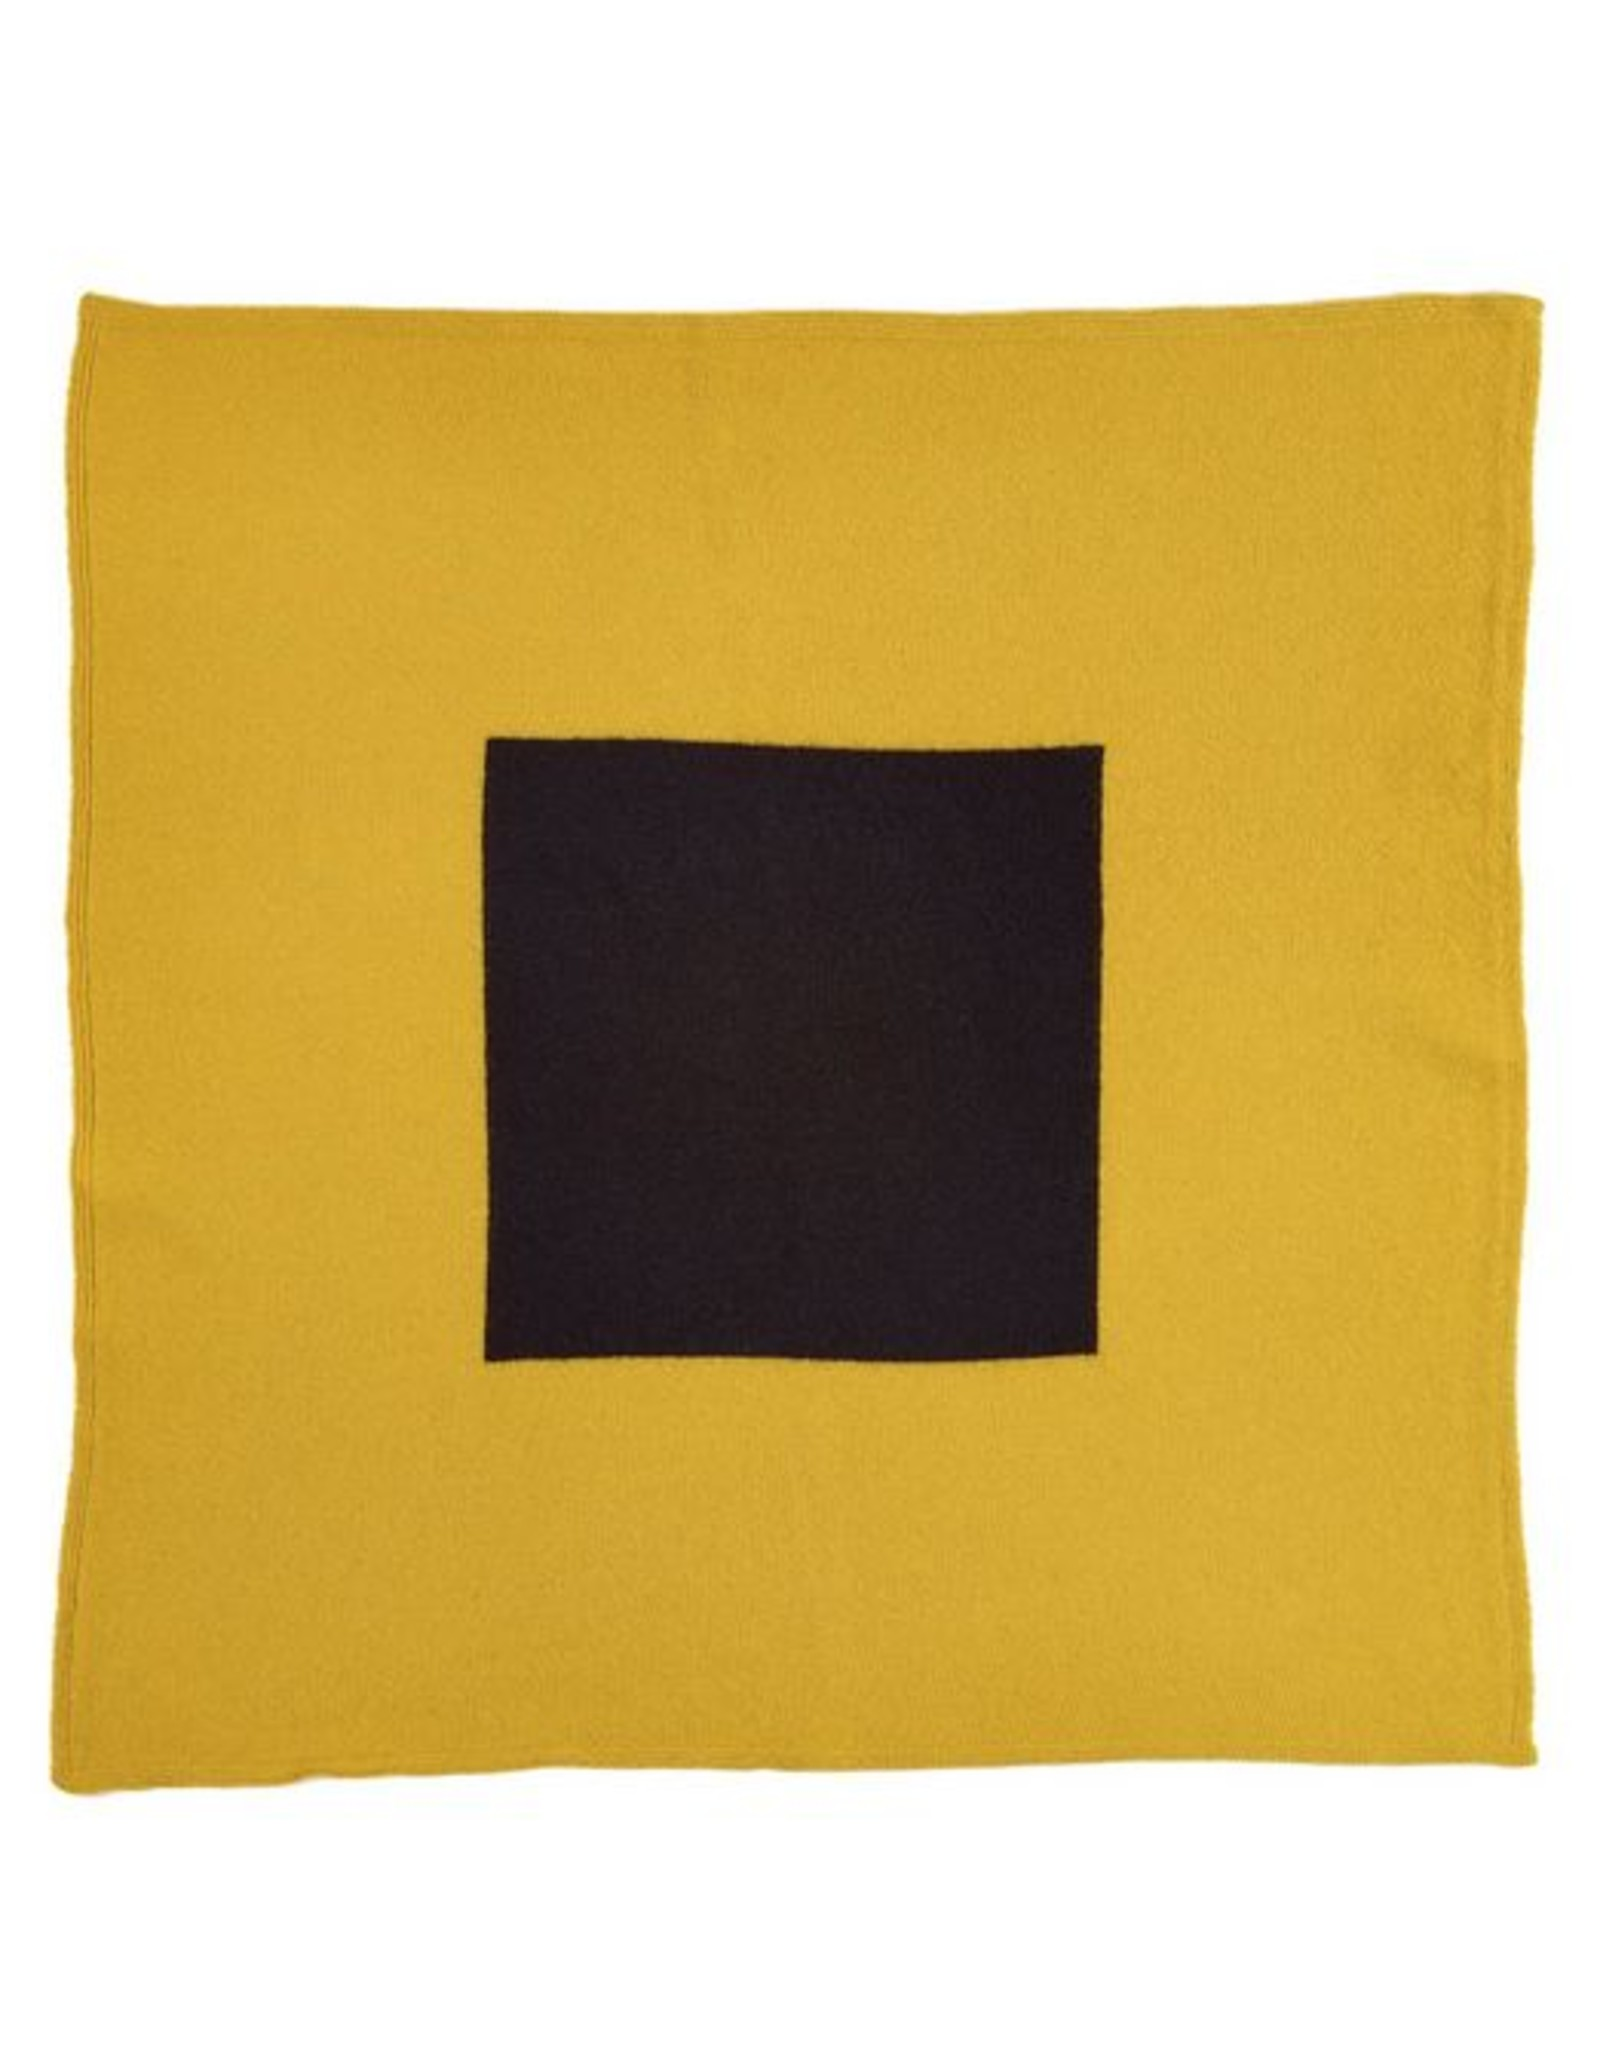 Jo Gordon Jo Gordon Scarf Square in Square Yellow/Black